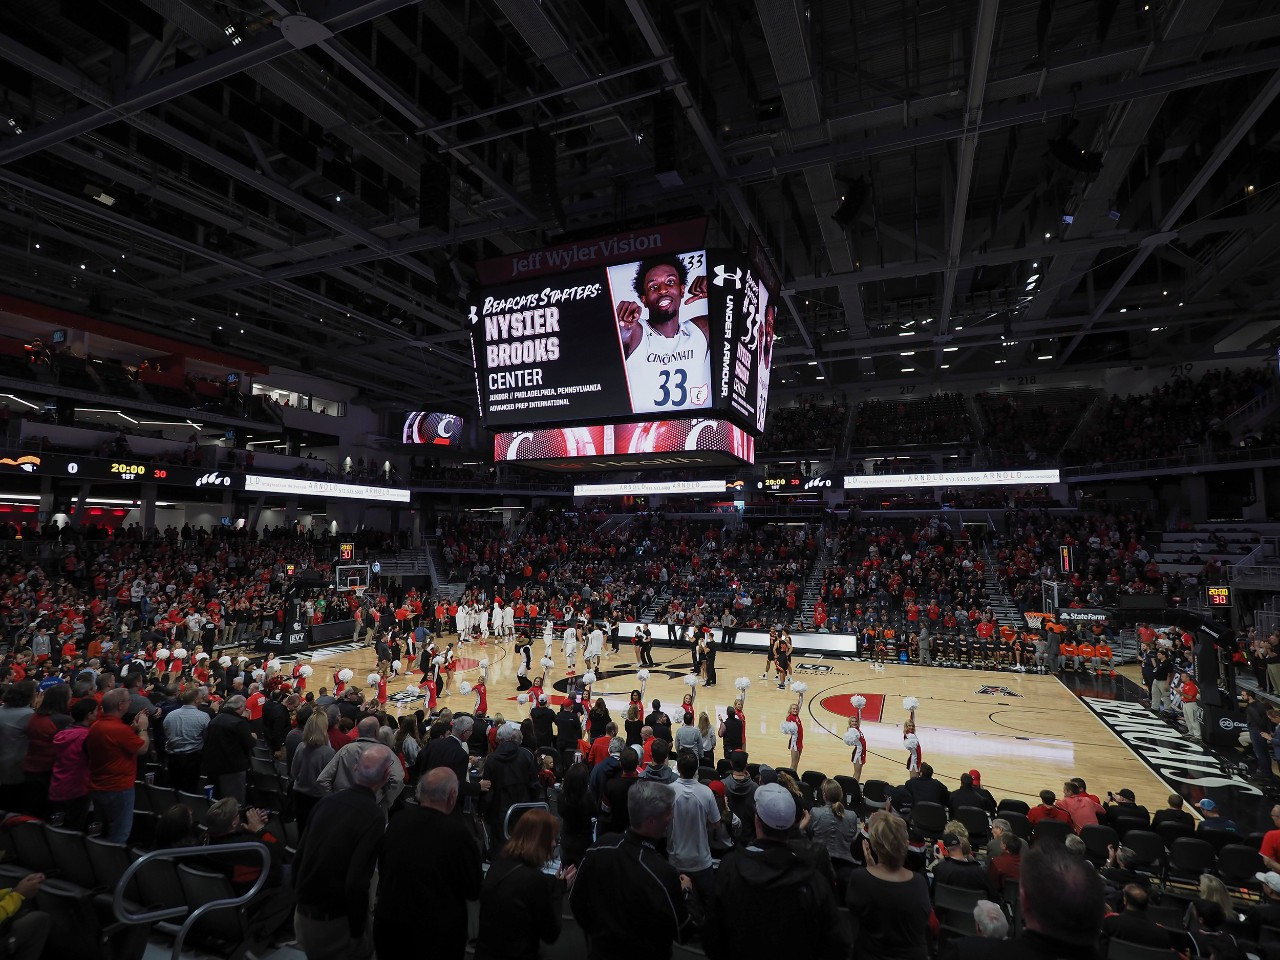 A wide shot of Fifth Third Arena during a men's basketball game shows the giant four-panel scoreboard, the UC logo at center court and a packed house of fans.